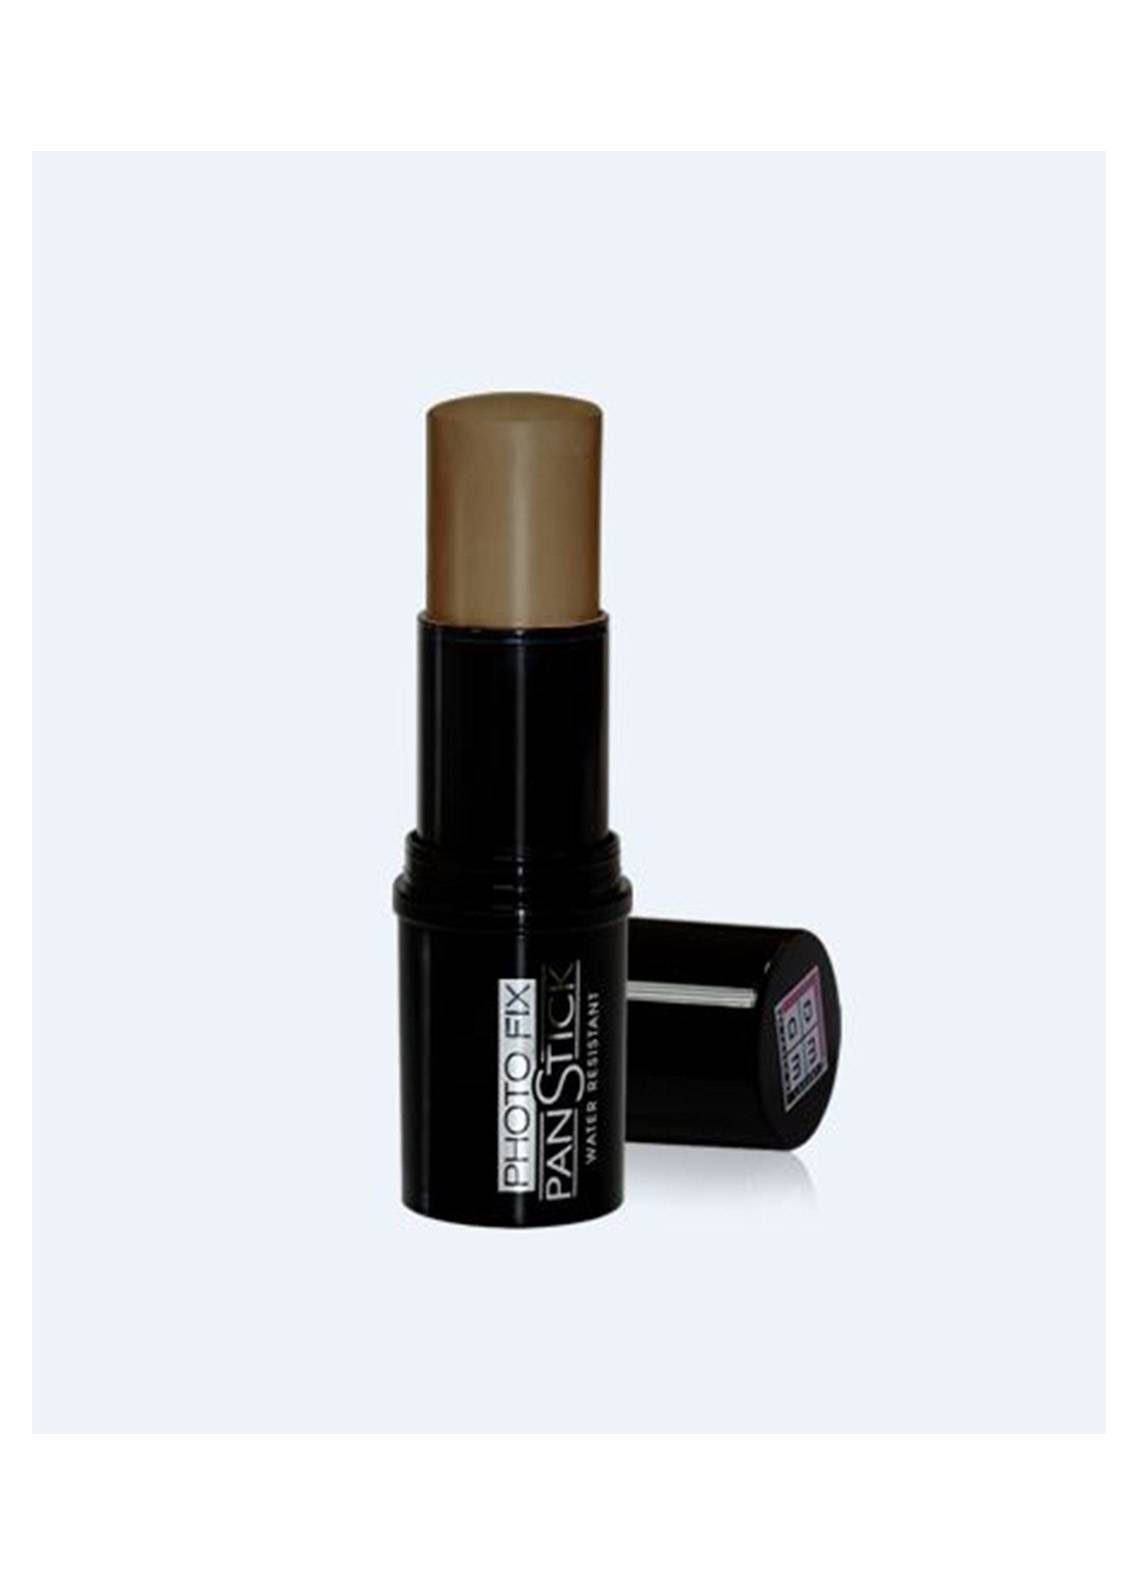 DMGM Photo Fix Pan Stick Foundation-468